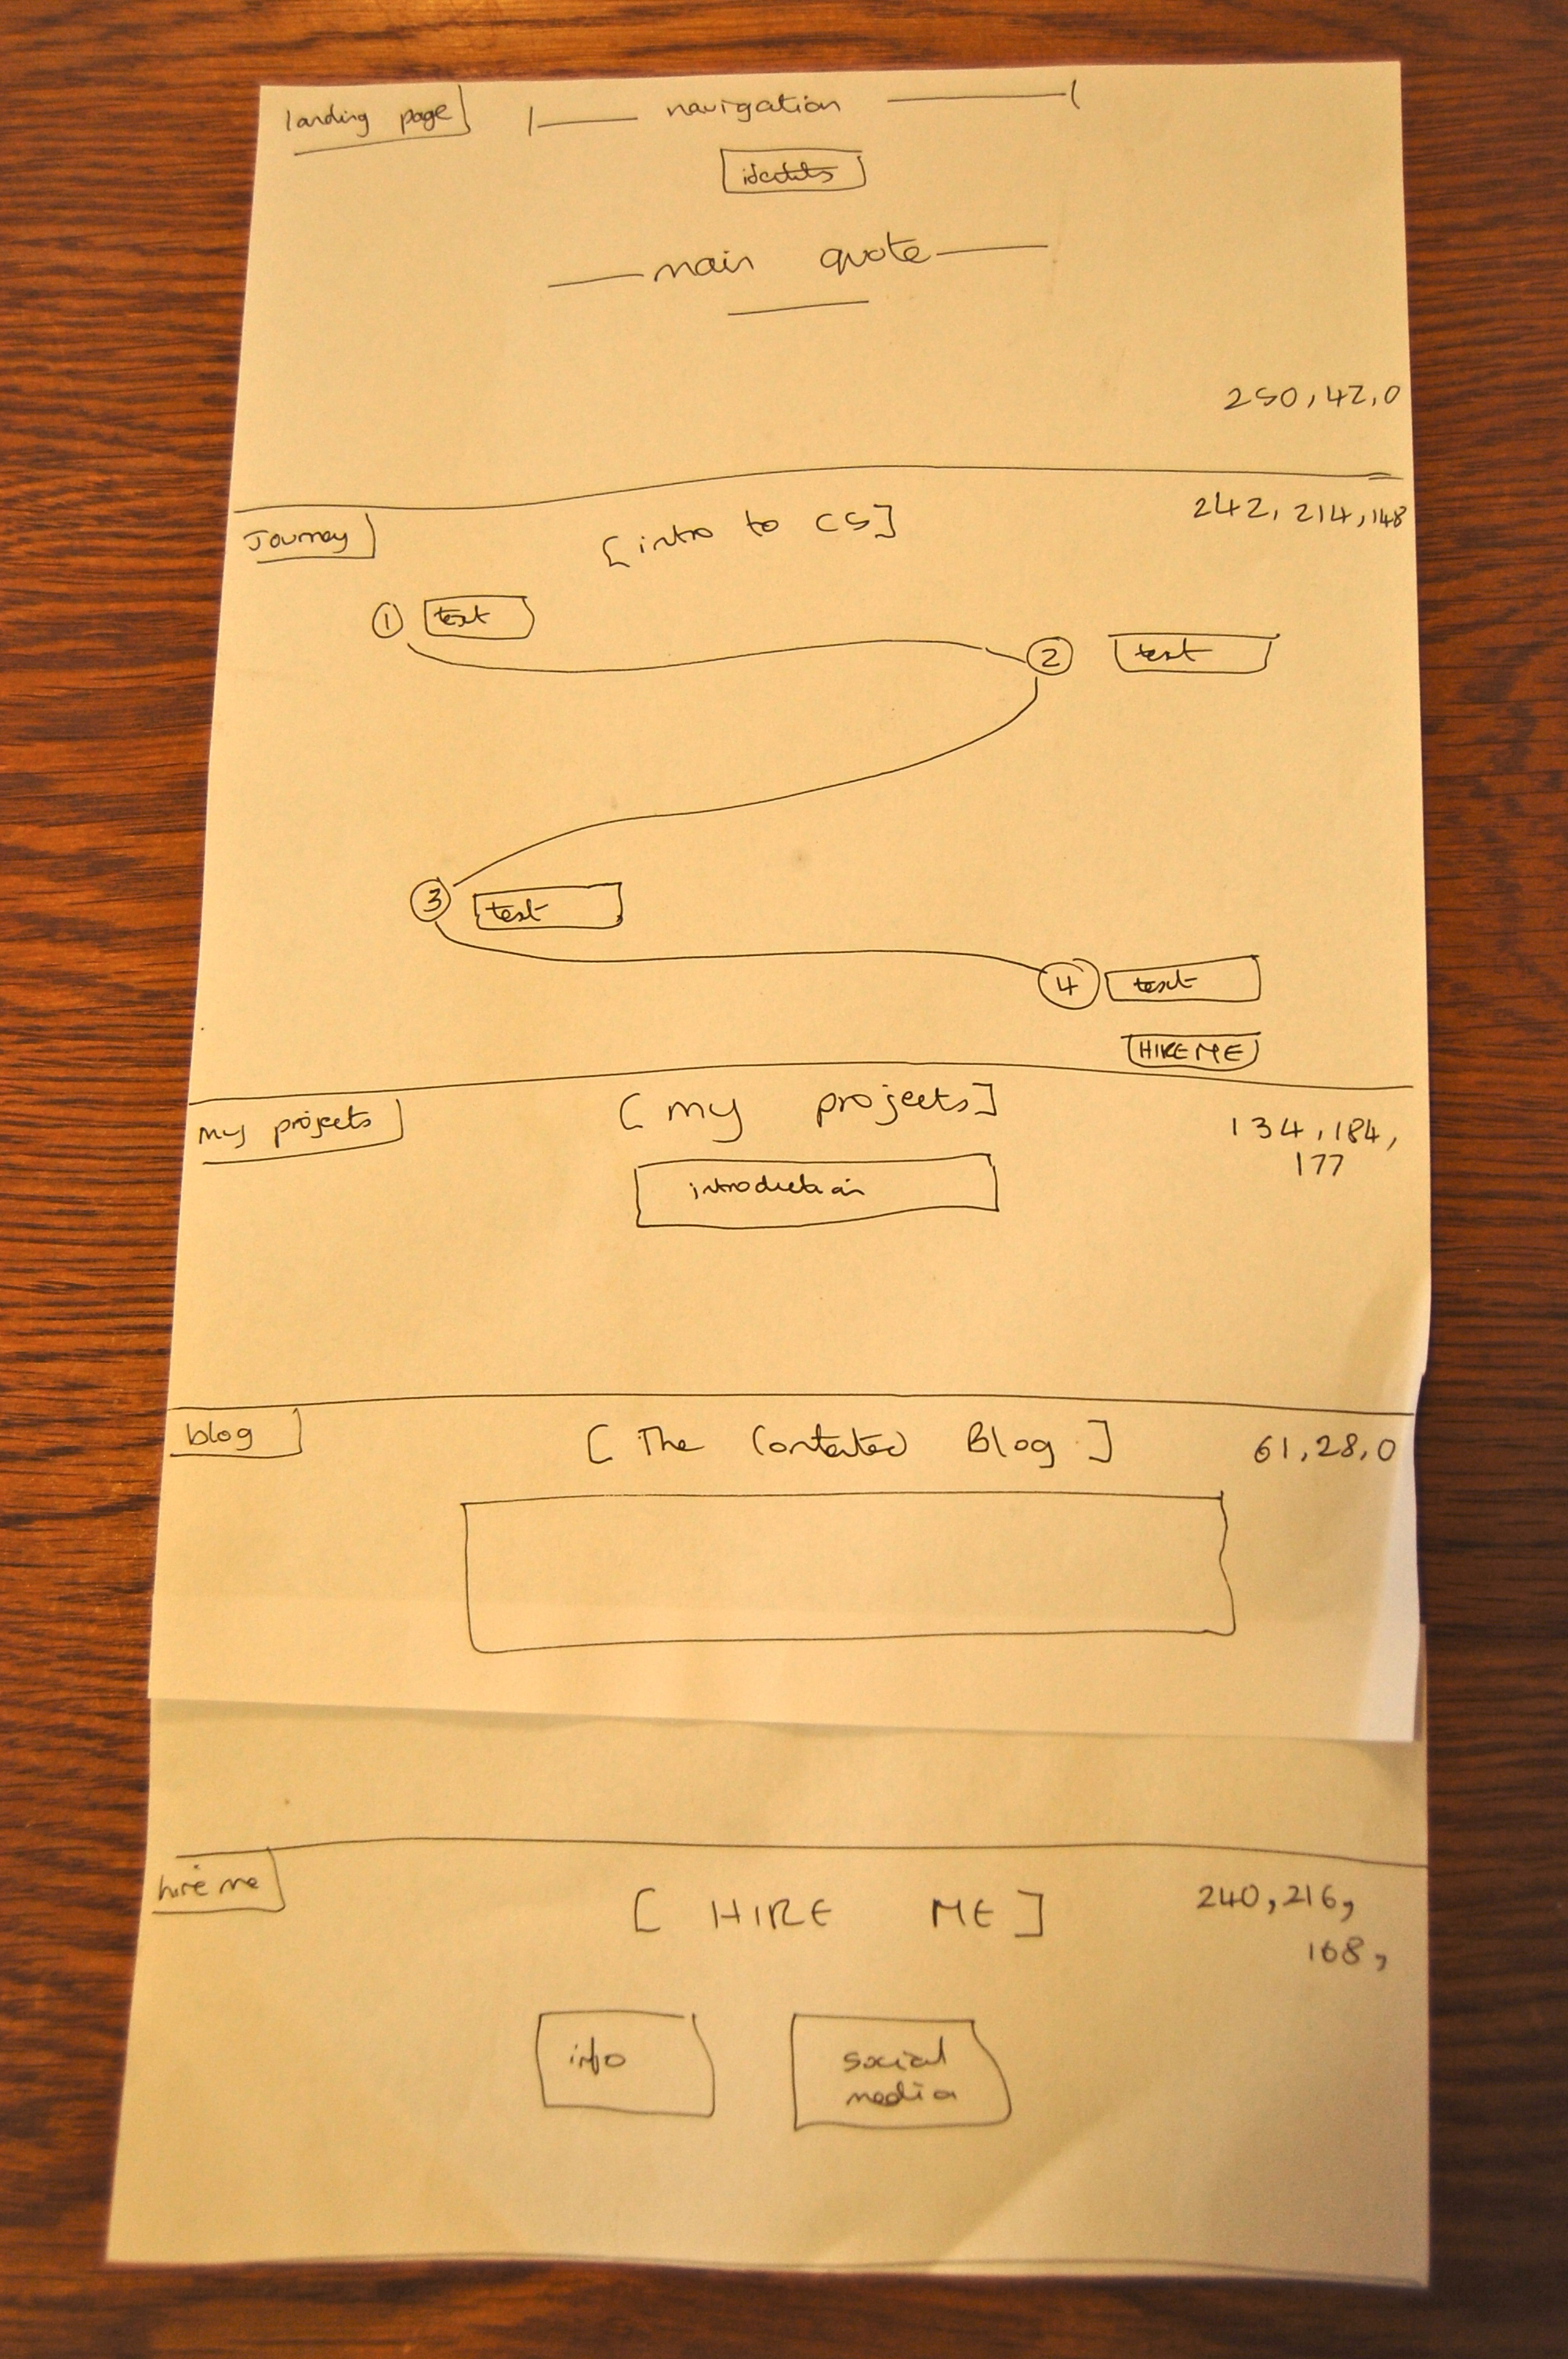 a hand-drawn sketch of my content strategy website